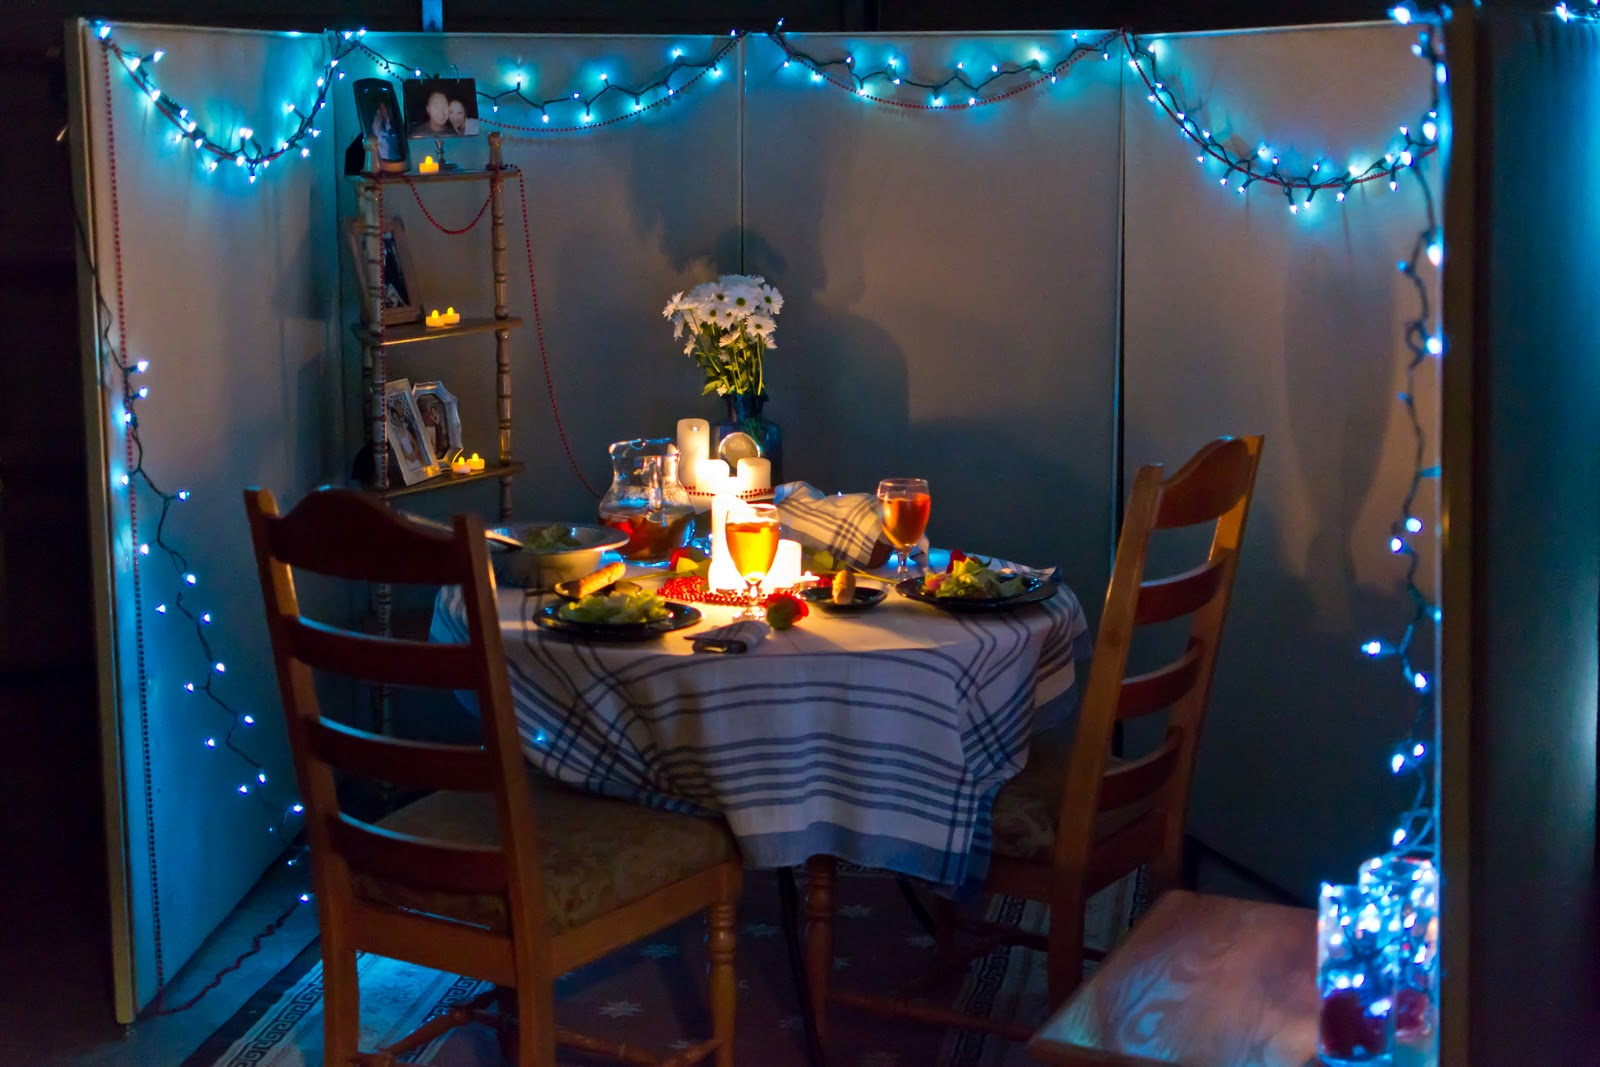 Romantic room ideas for valentines affordable romantic gifts u images of at home romantic dinner ideas best easter gift ever with romantic room ideas for valentines negle Images